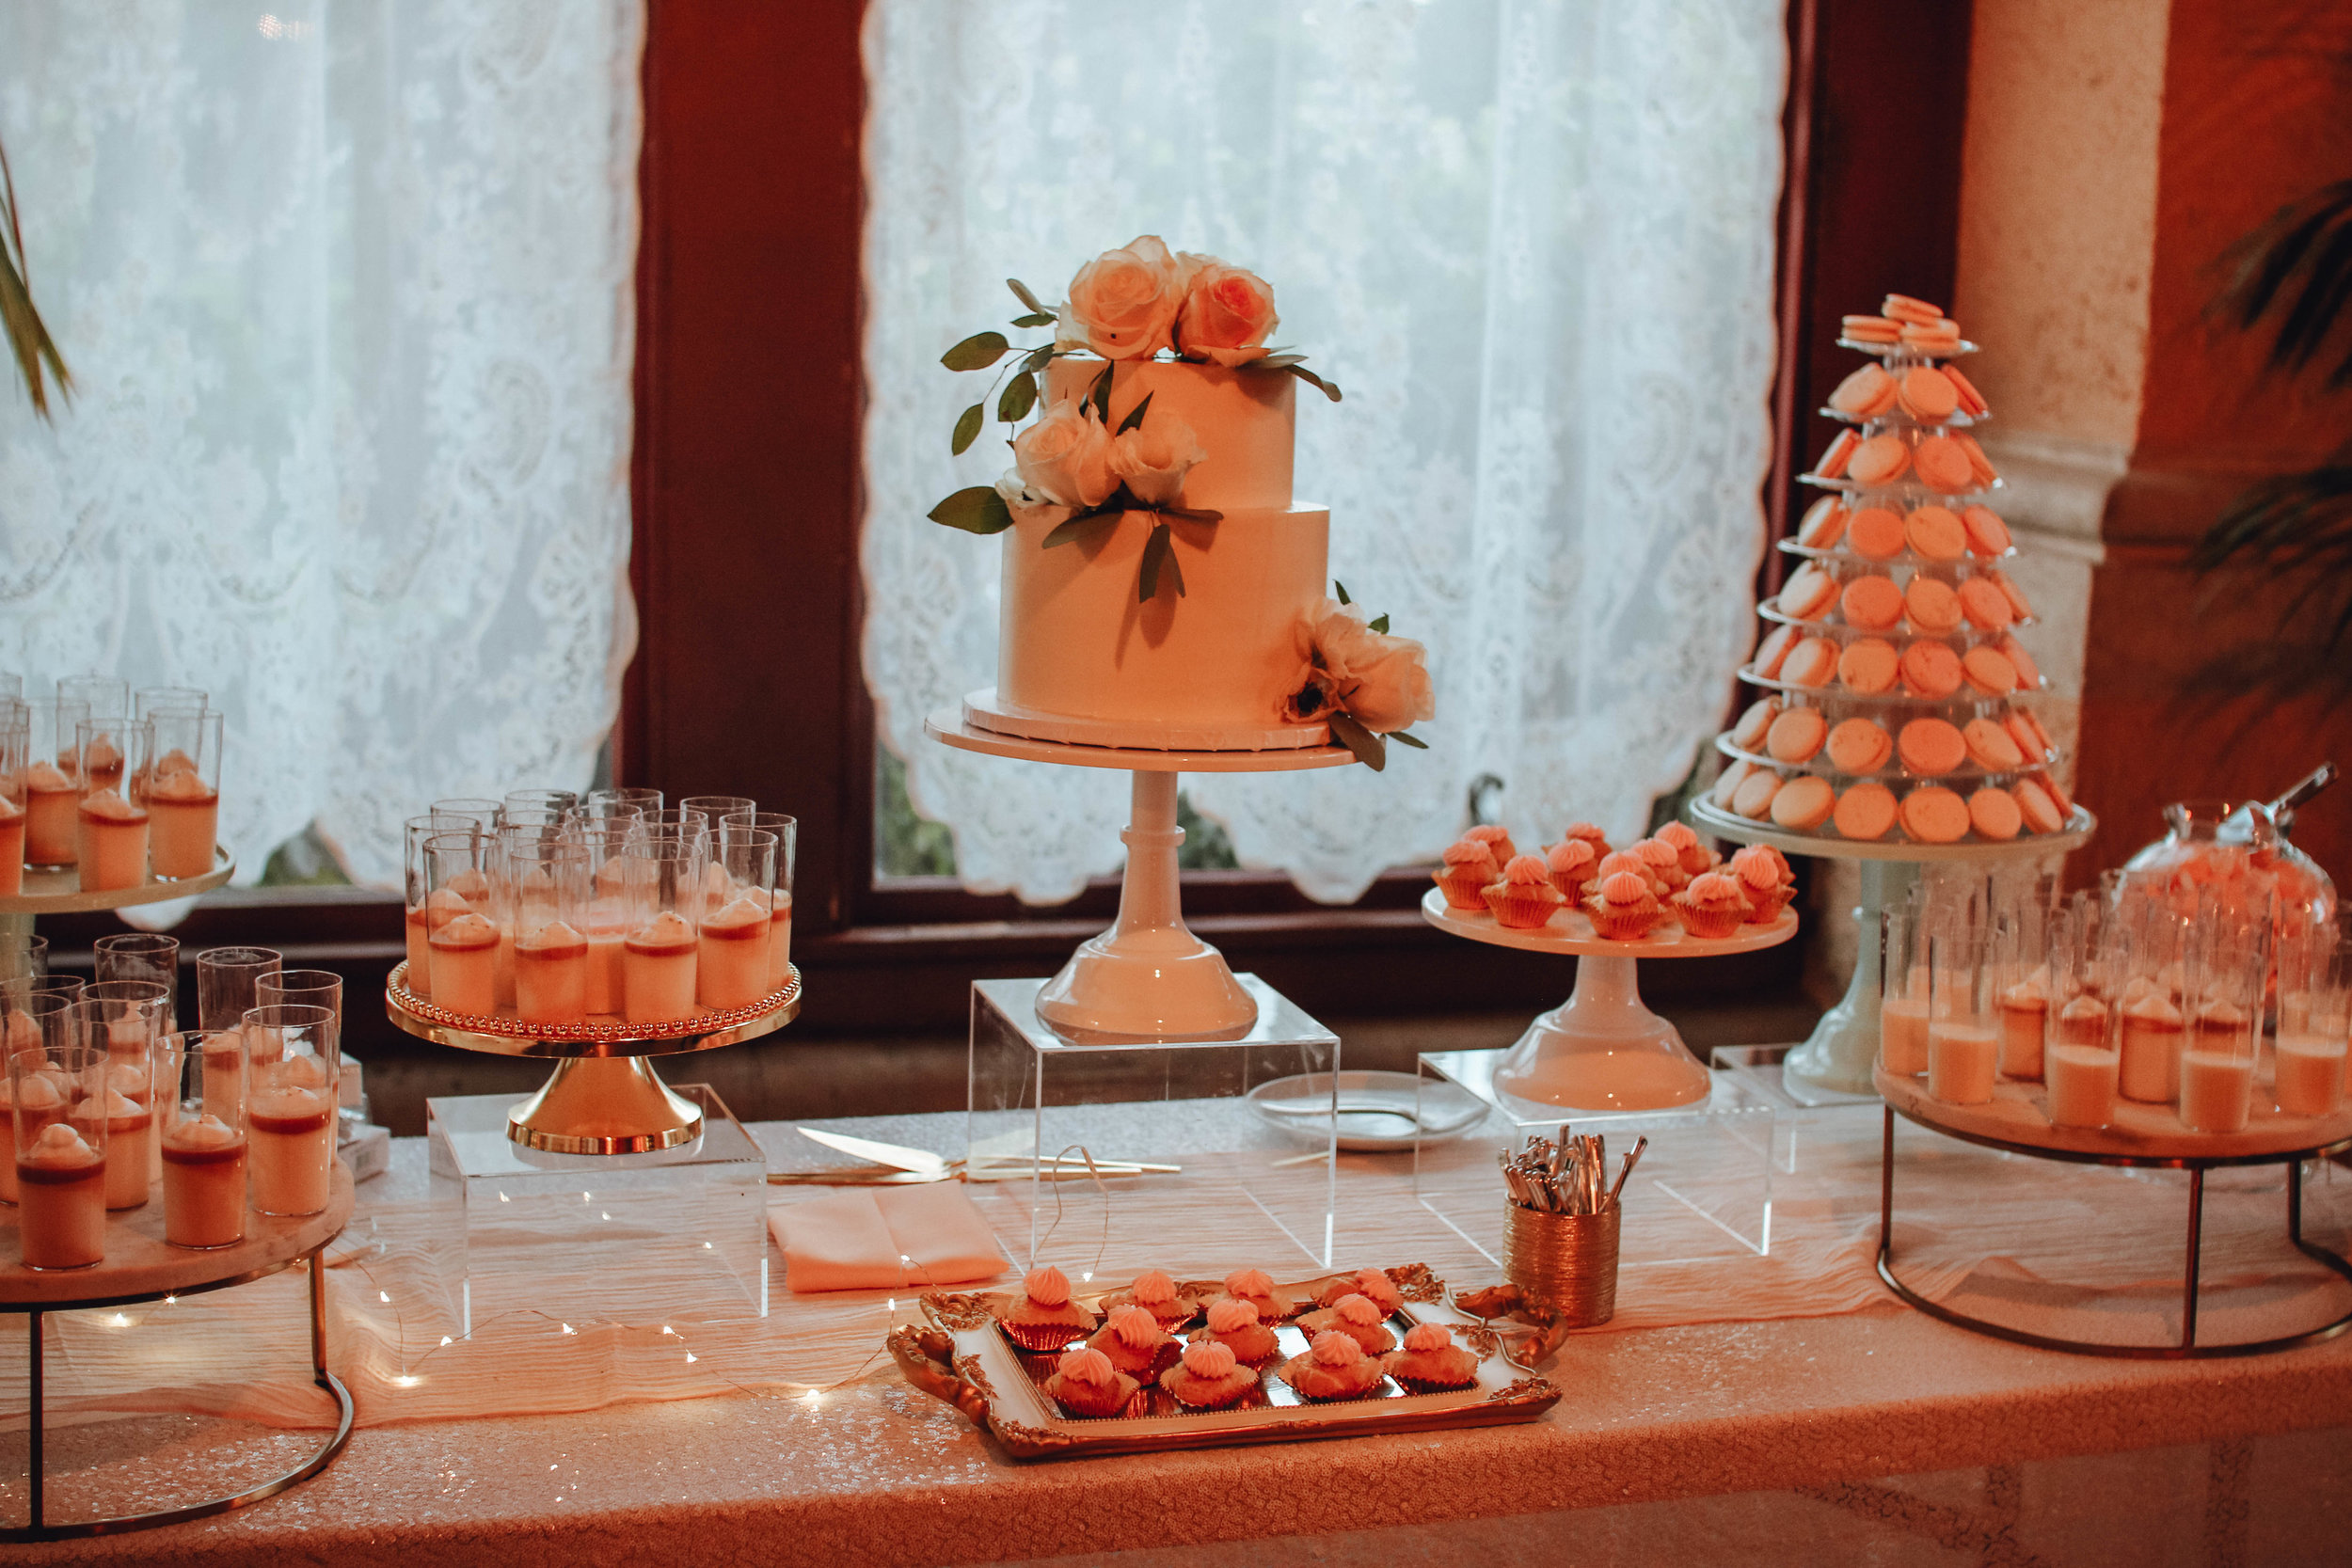 dessert-table-display.jpg